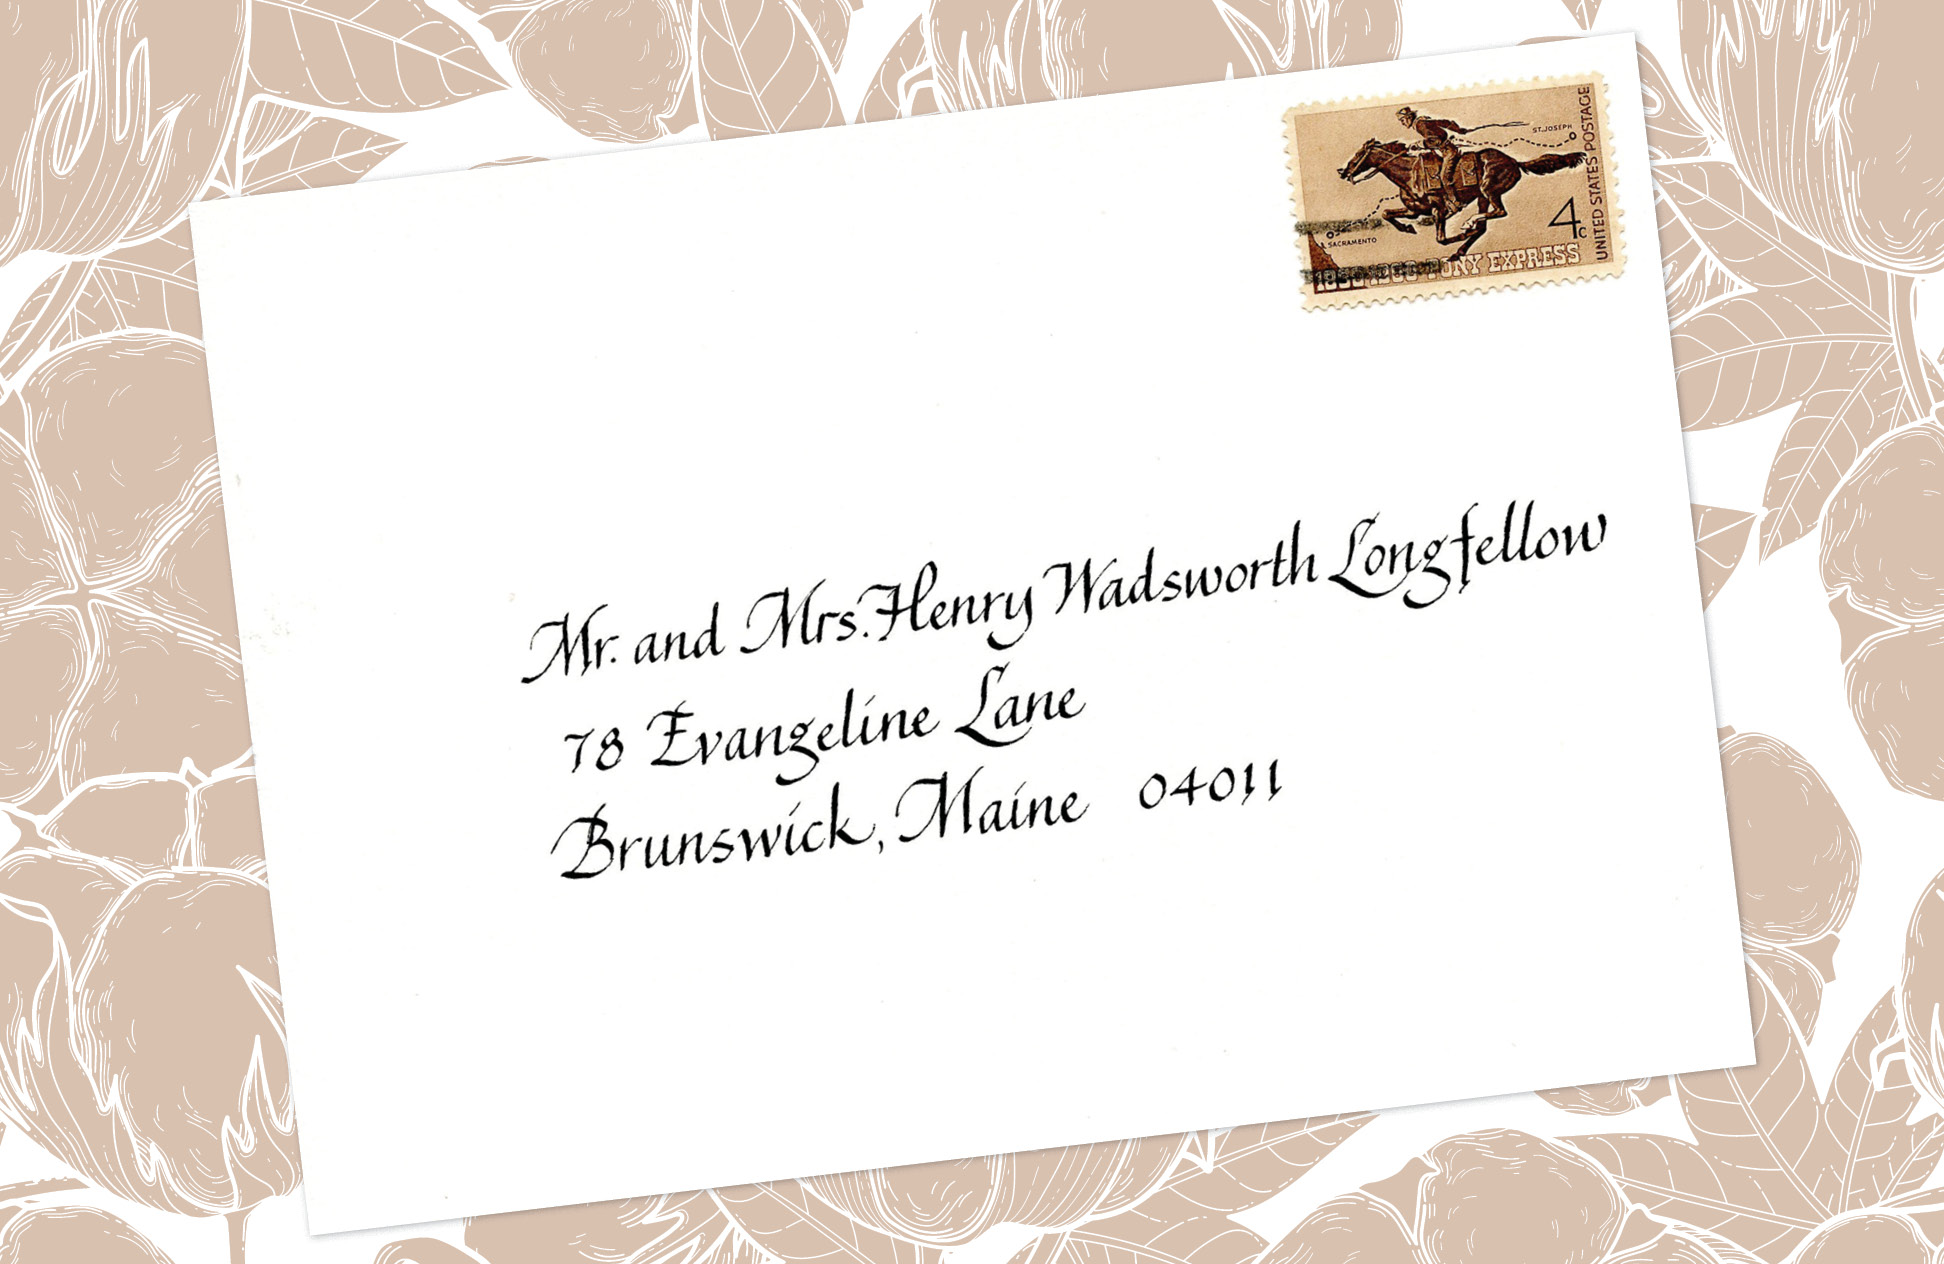 16. Style: Mr. and Mrs. Henry Wadsworth Longfellow (Alexandra)